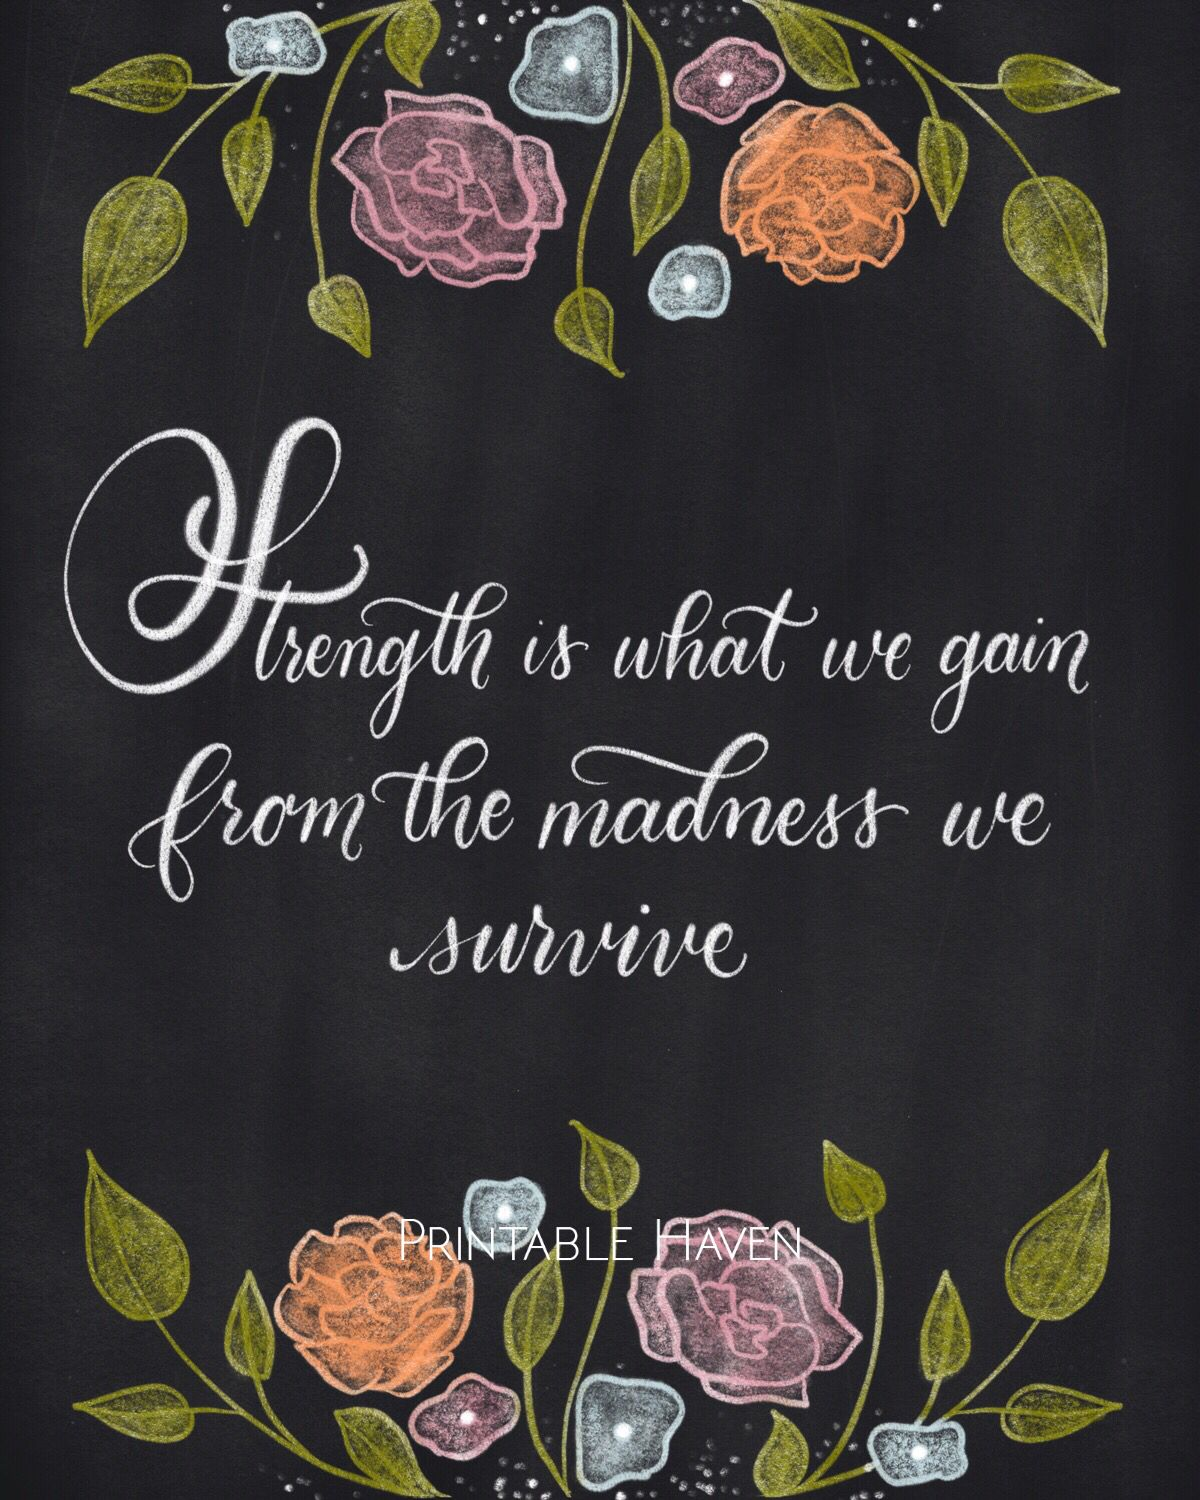 Inspirational Strength Quotes Chalkboard Inspirational Strength Quote  Strength Is What We Gain